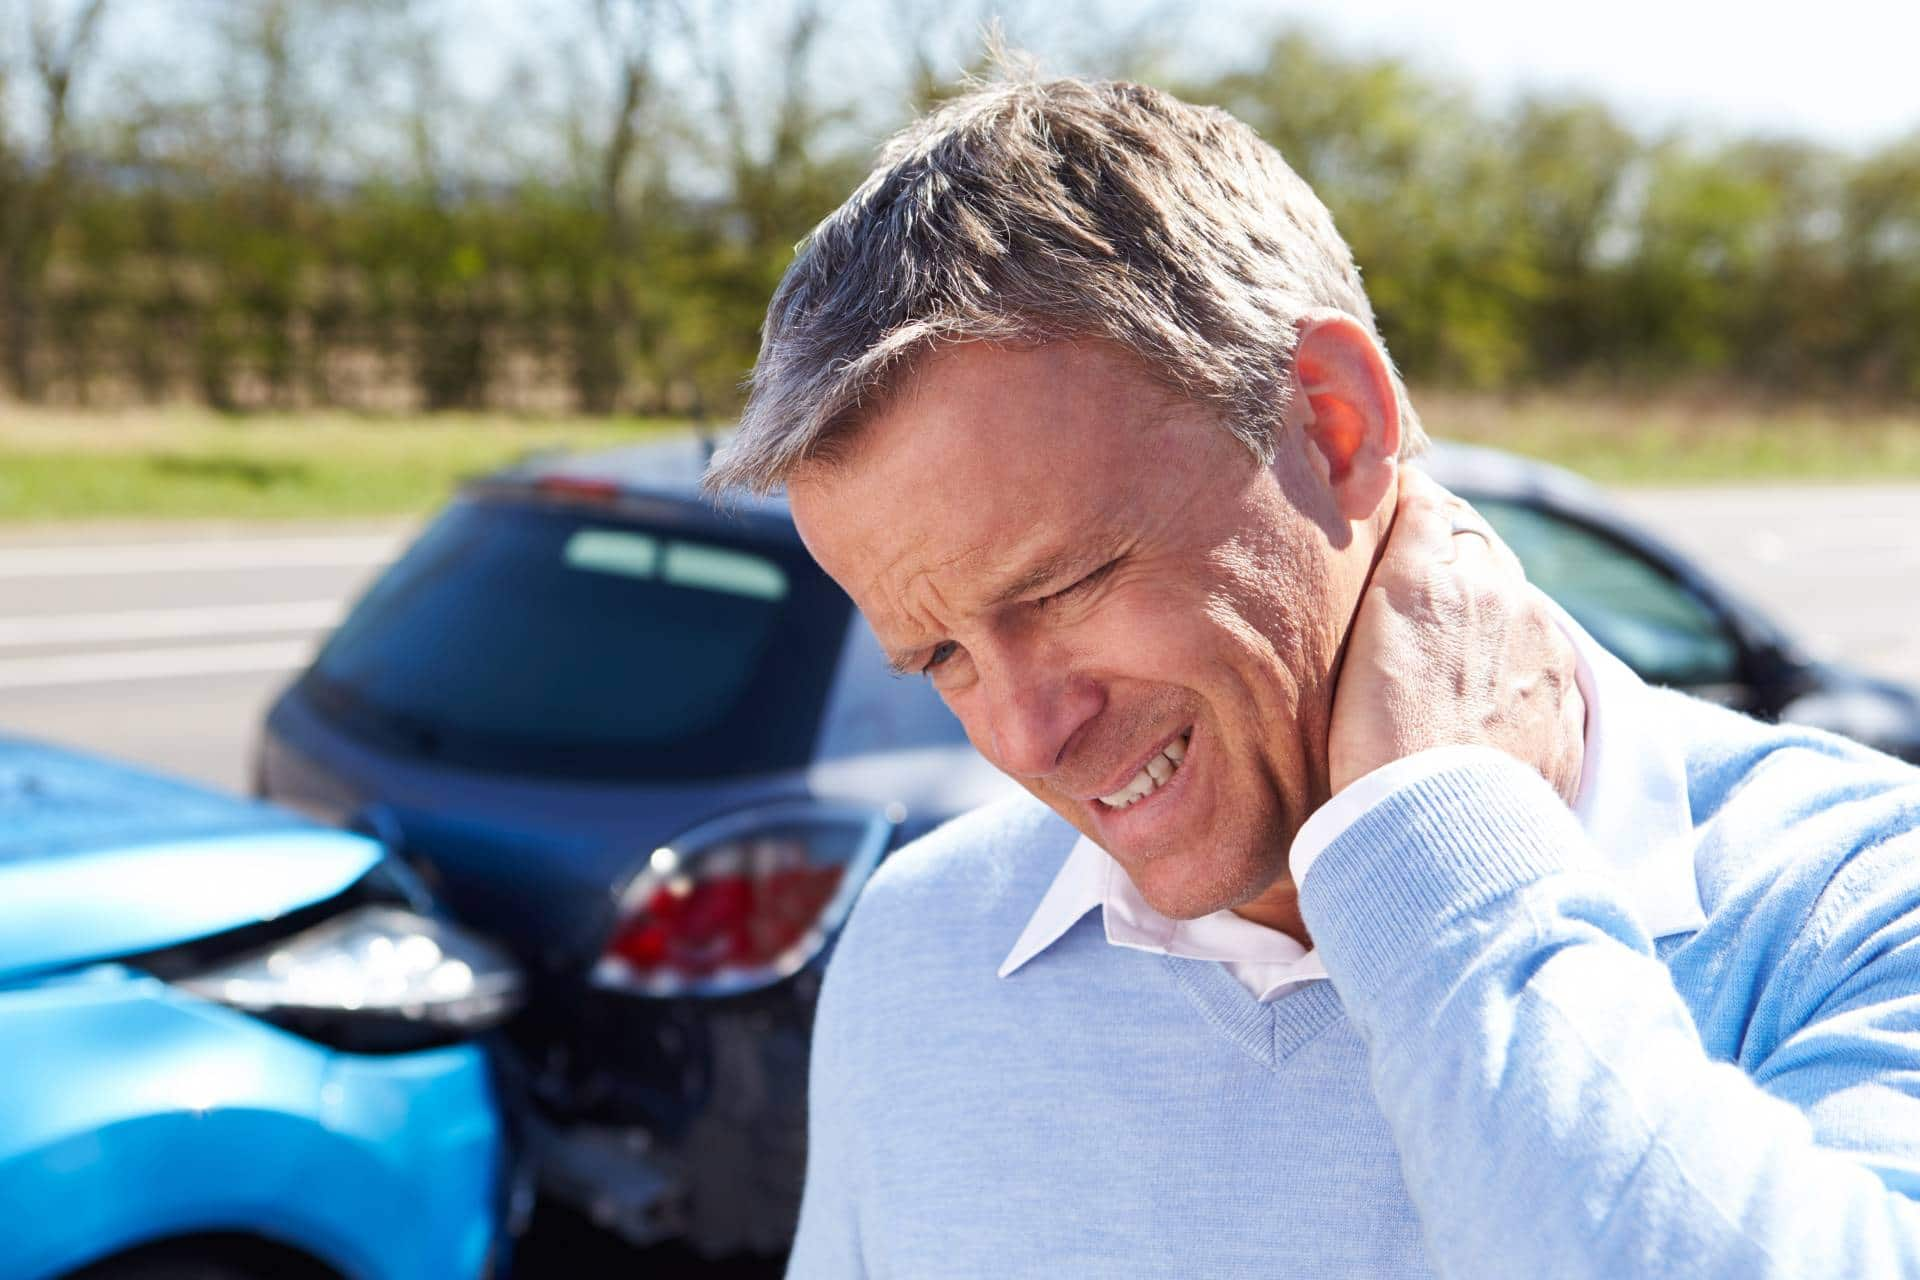 Injured in a car accident? Schedule a free consultation with our personal injury lawyers at the Angell Law Firm in Lindridge-Martin Manor